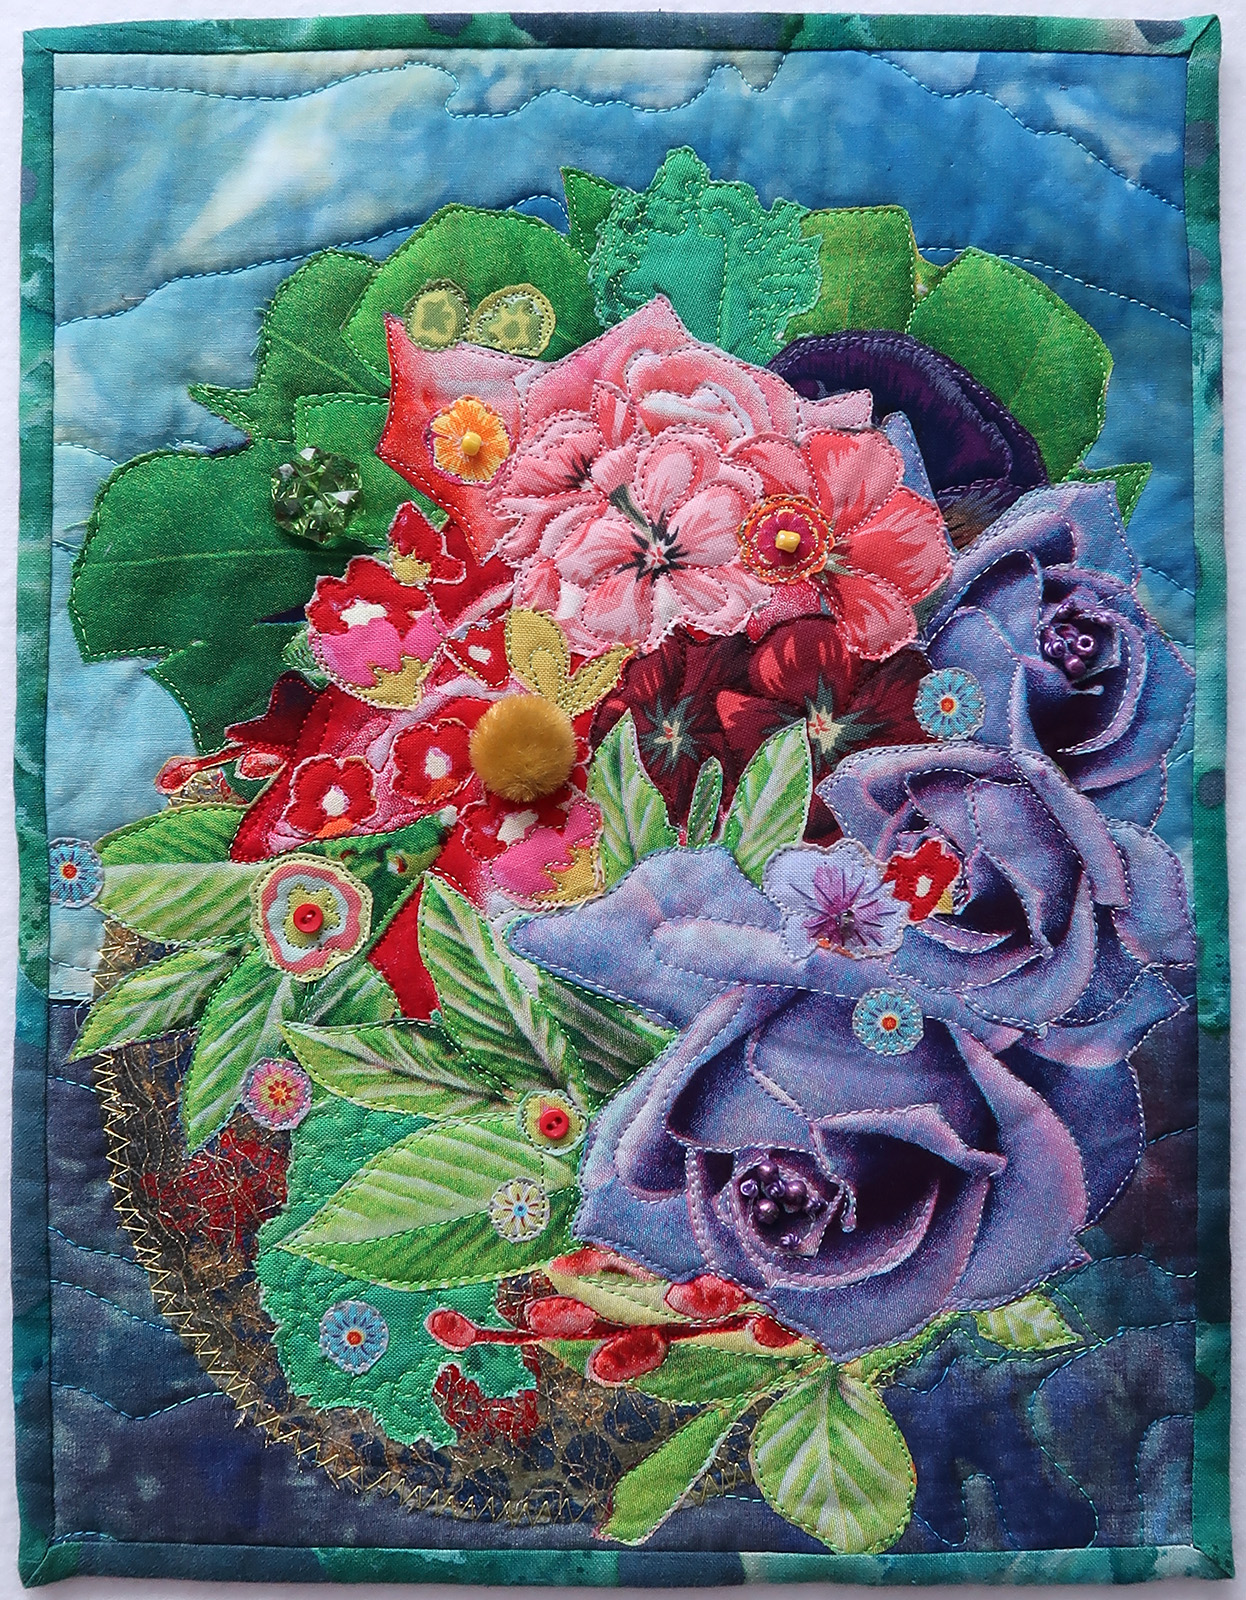 "Underwater Bouquet - 8.5"" x 11"" - Feb 2018Touring with FAN exhibit From a Tiny SeedI am continuously inspired by my experience scuba diving and the diversity of life in the ocean. Like a garden scape of life so rich and colourful, this work started from a seed, ideas and decisions nurtured one after another. I am a true explorer on every dive, and artistic challenge."